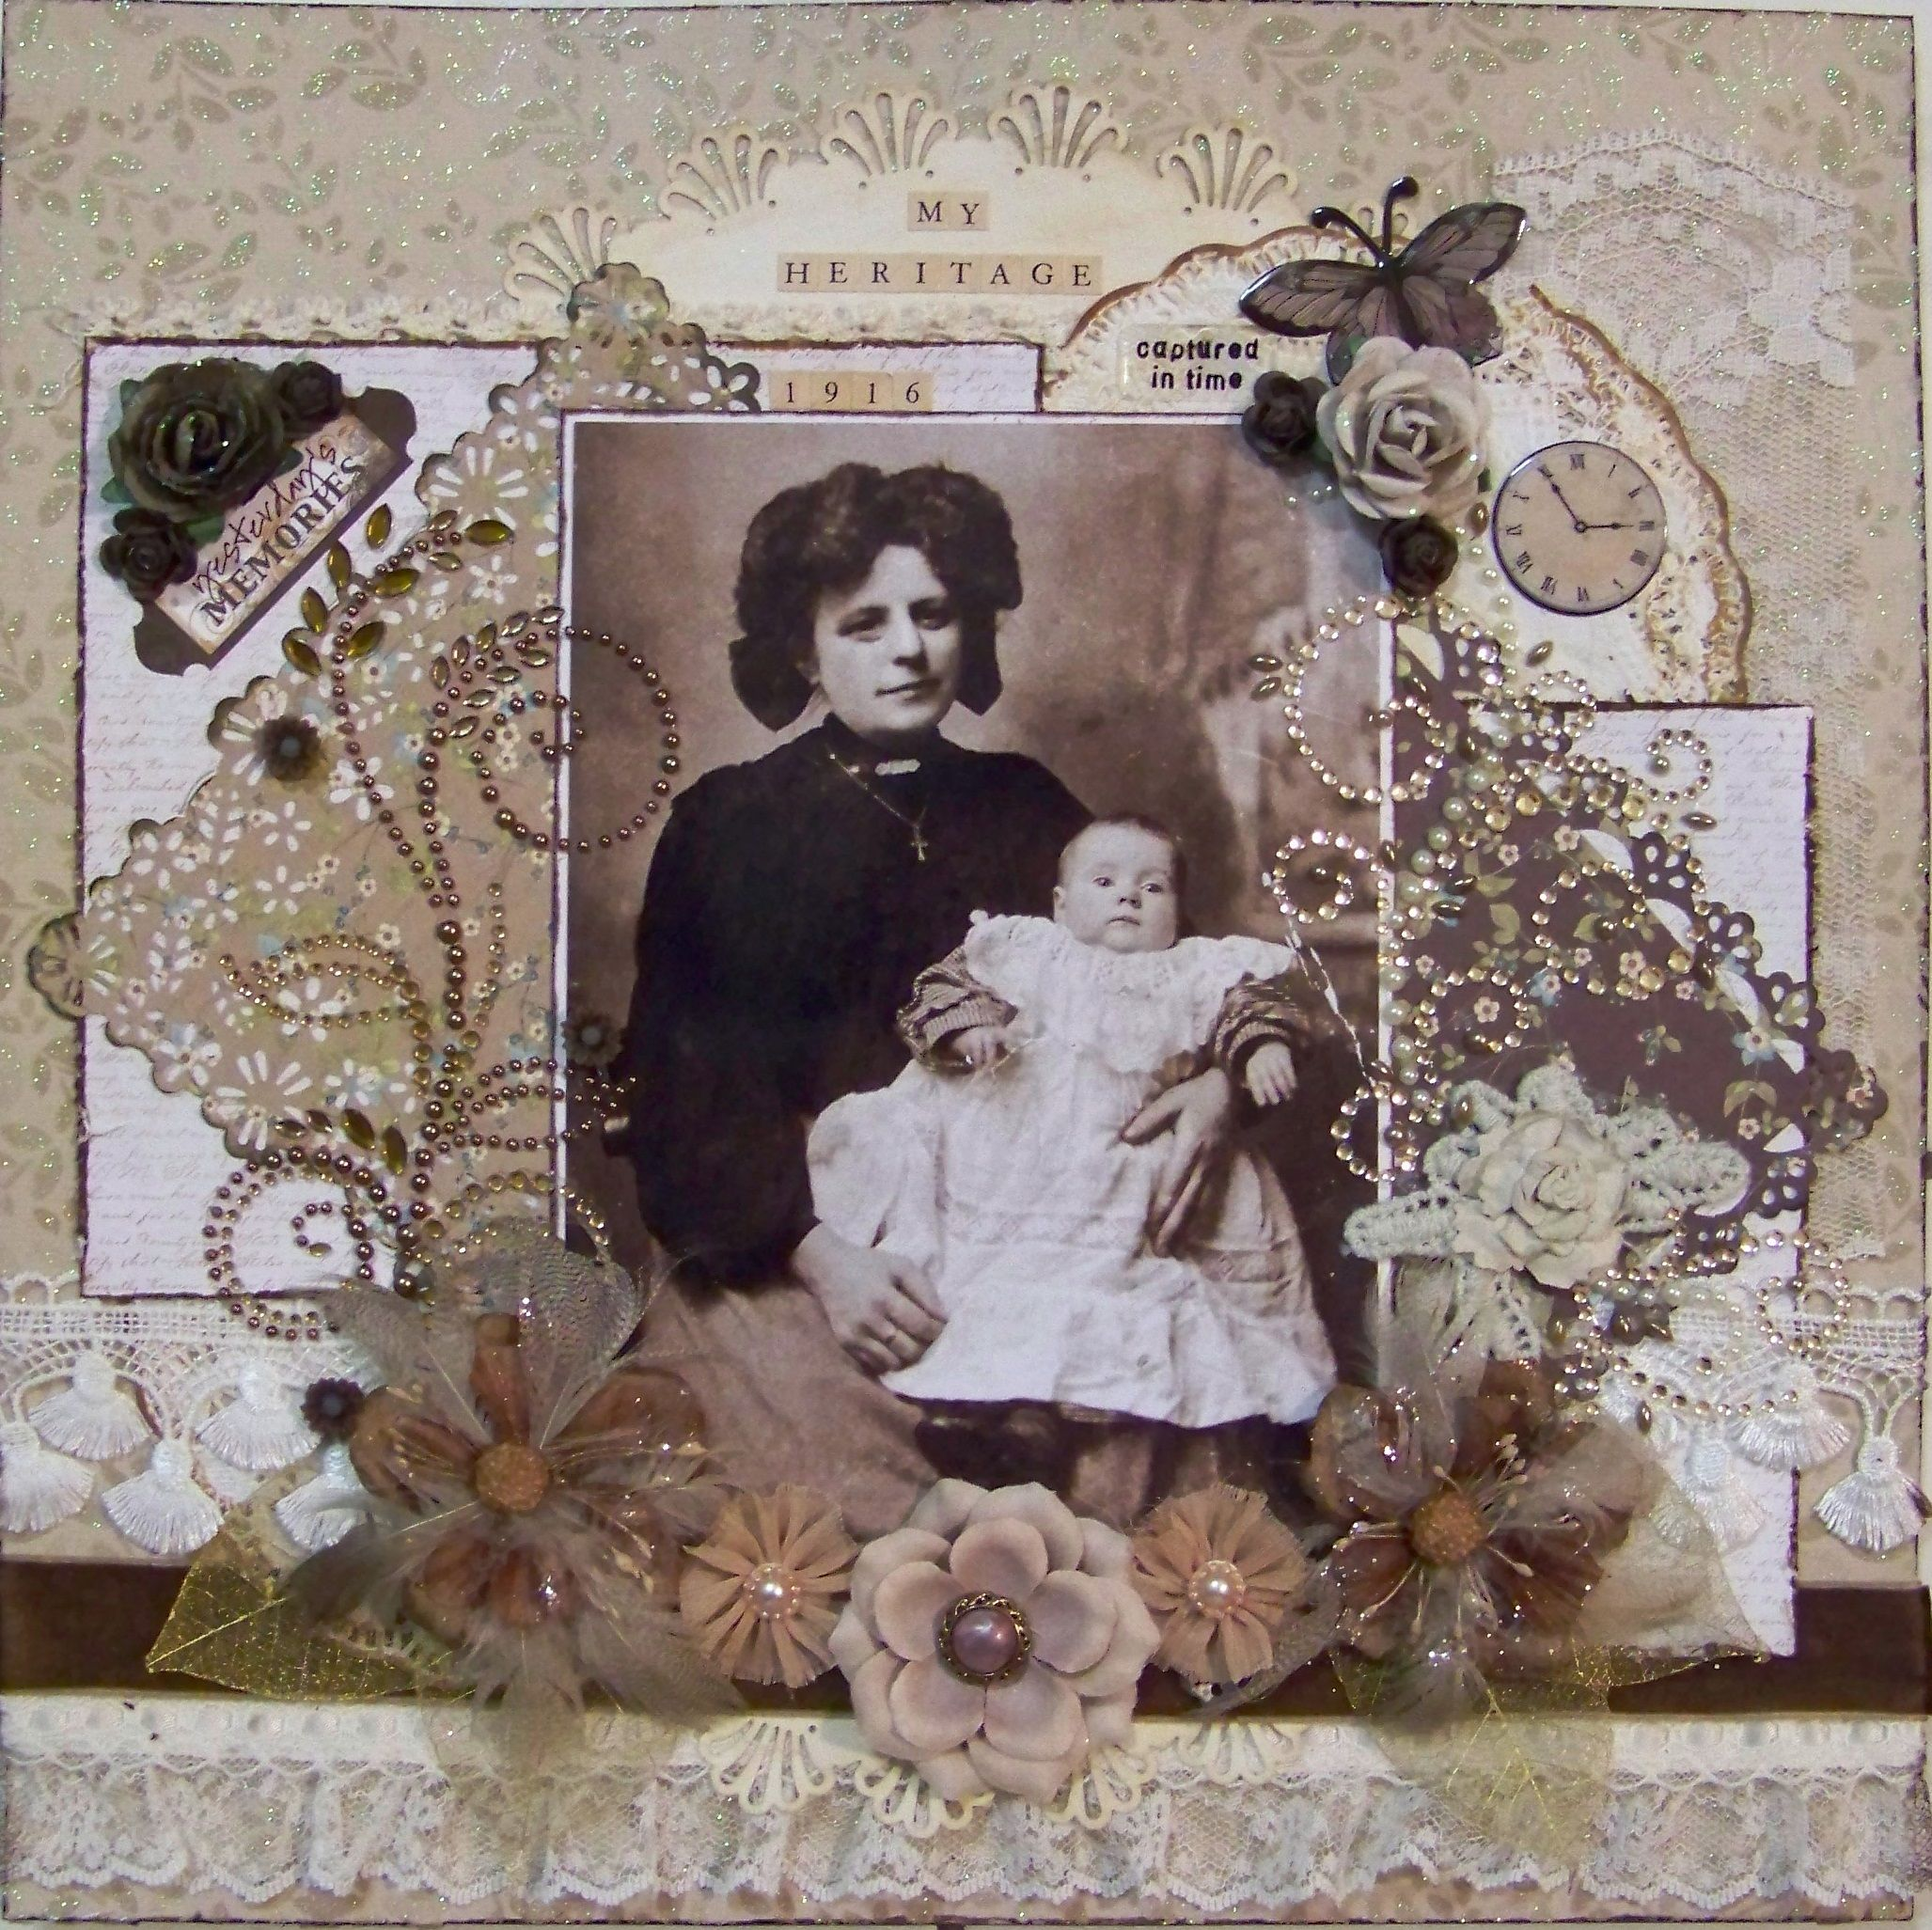 Vintage style scrapbook ideas - My Heritage Scrapbook Com Love This Heritage Page She Includes